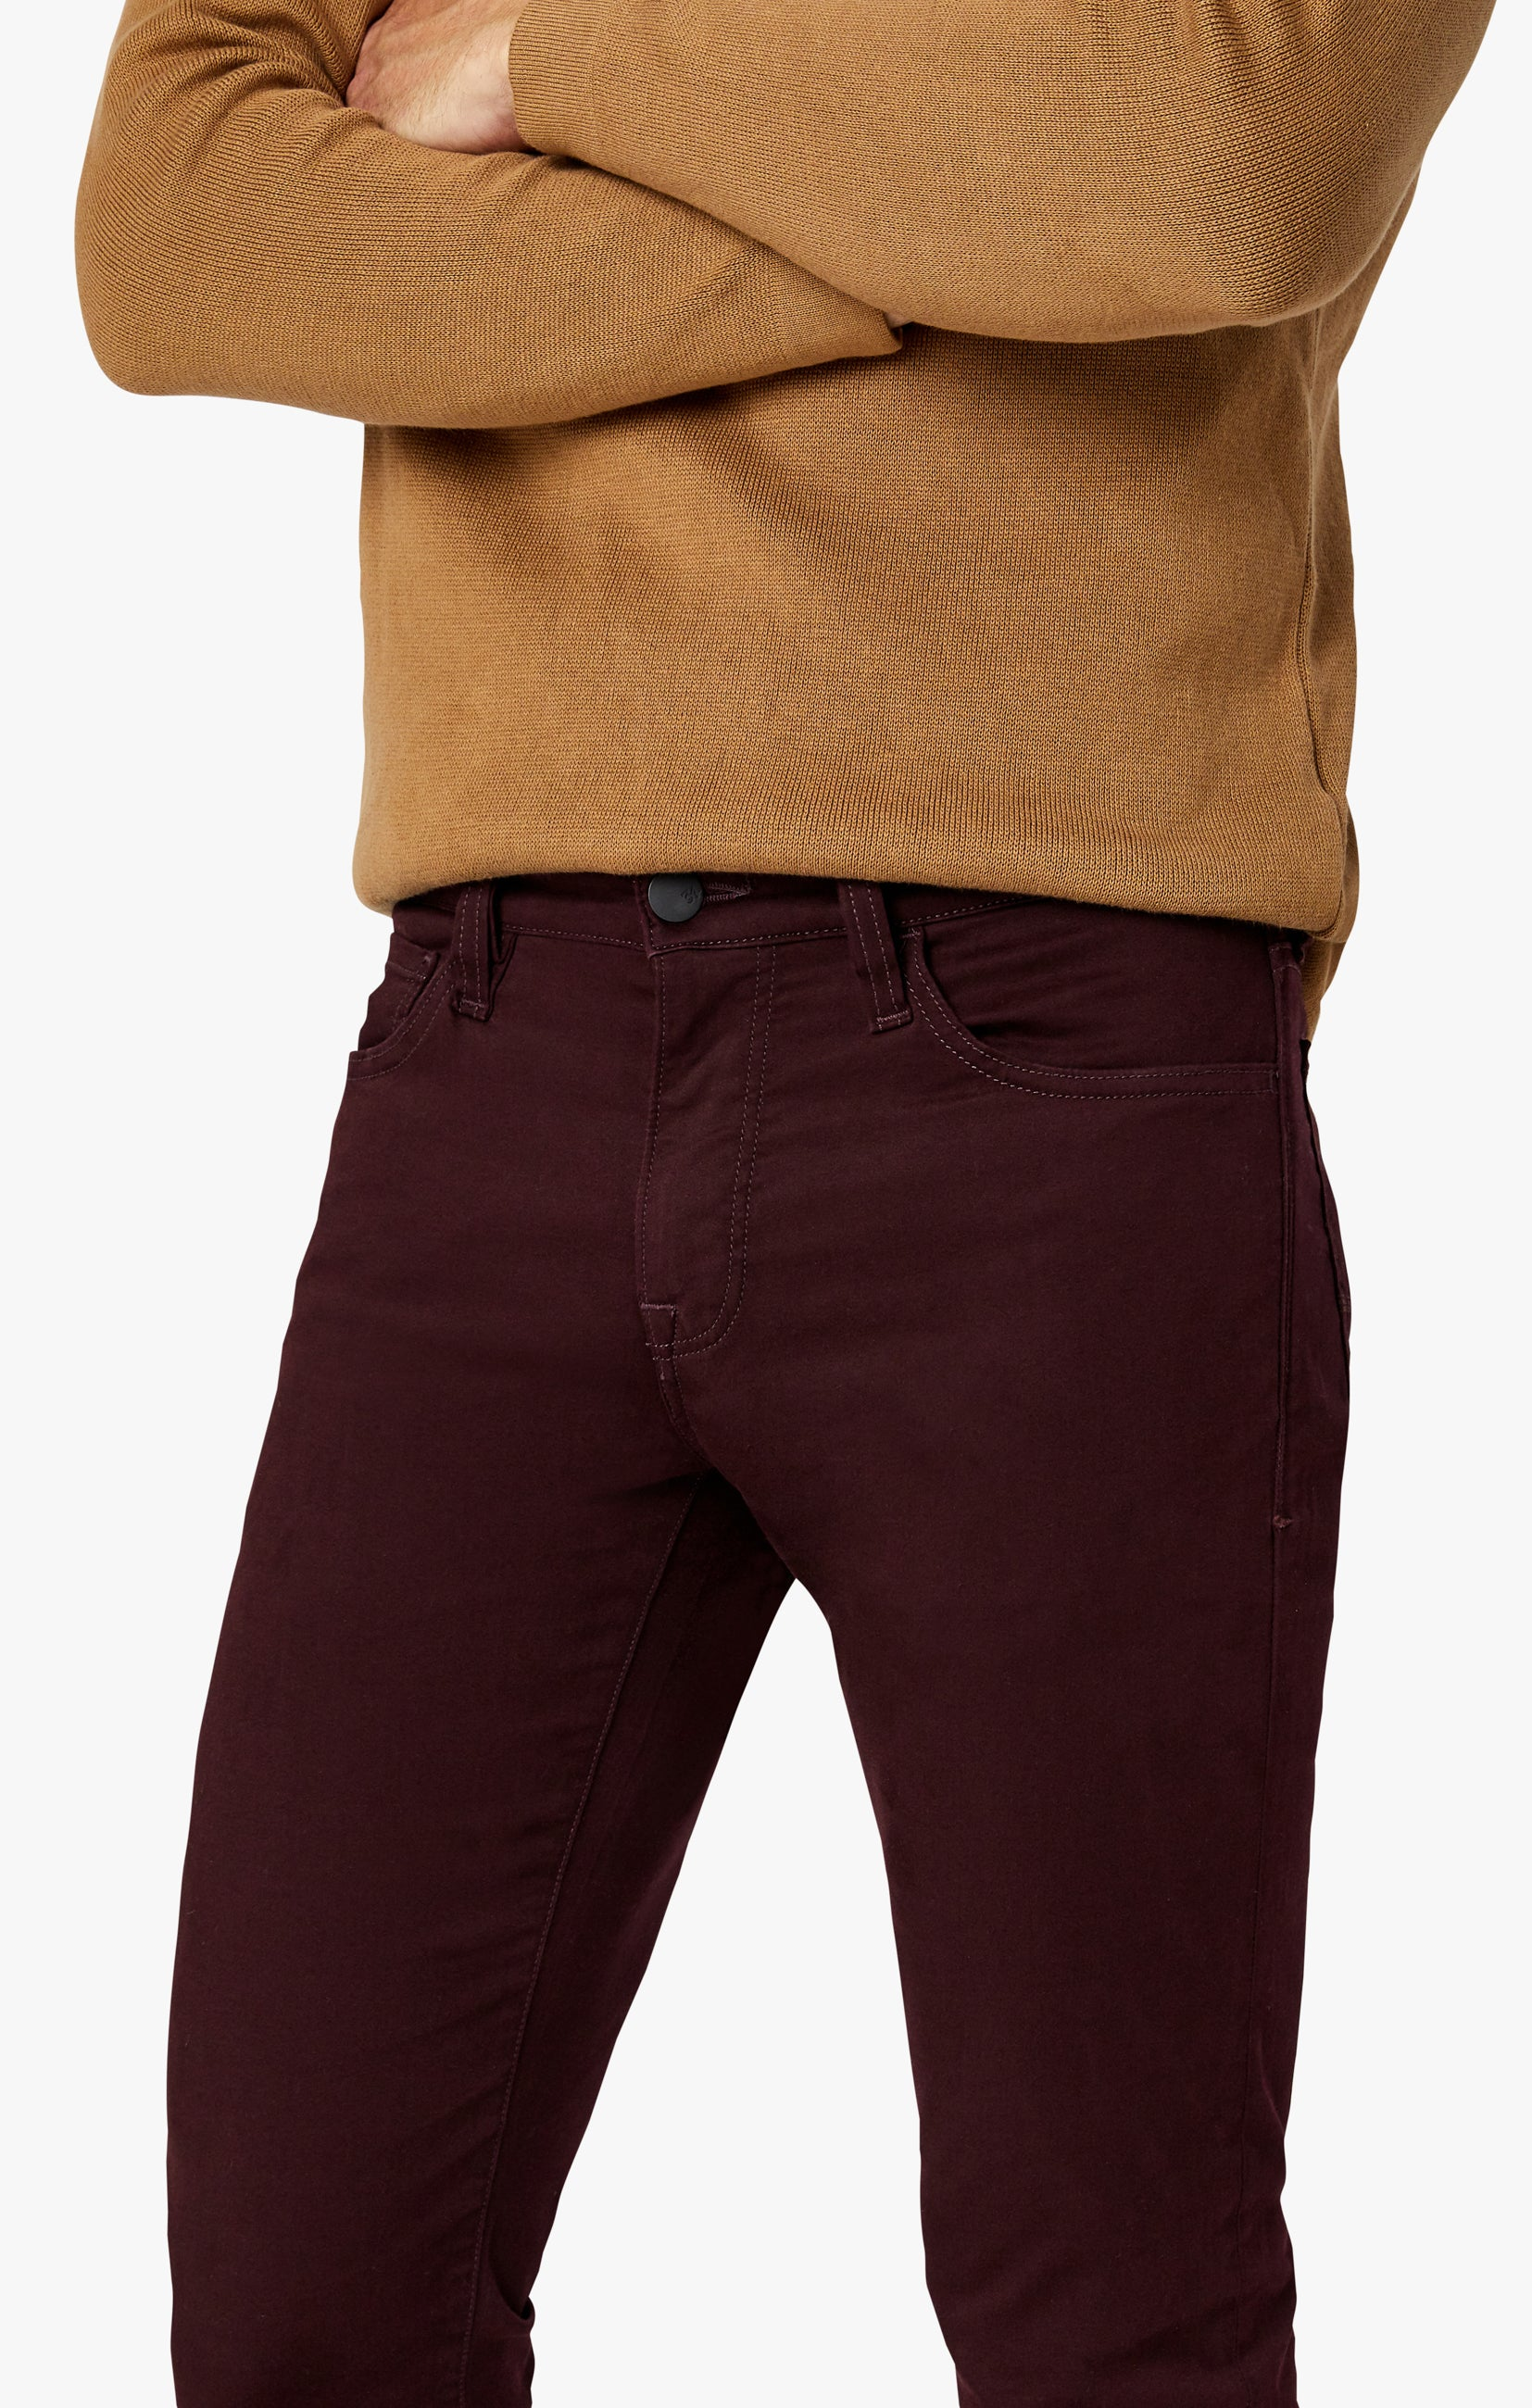 Charisma Relaxed Straight Pants in Wine Twill Image 2